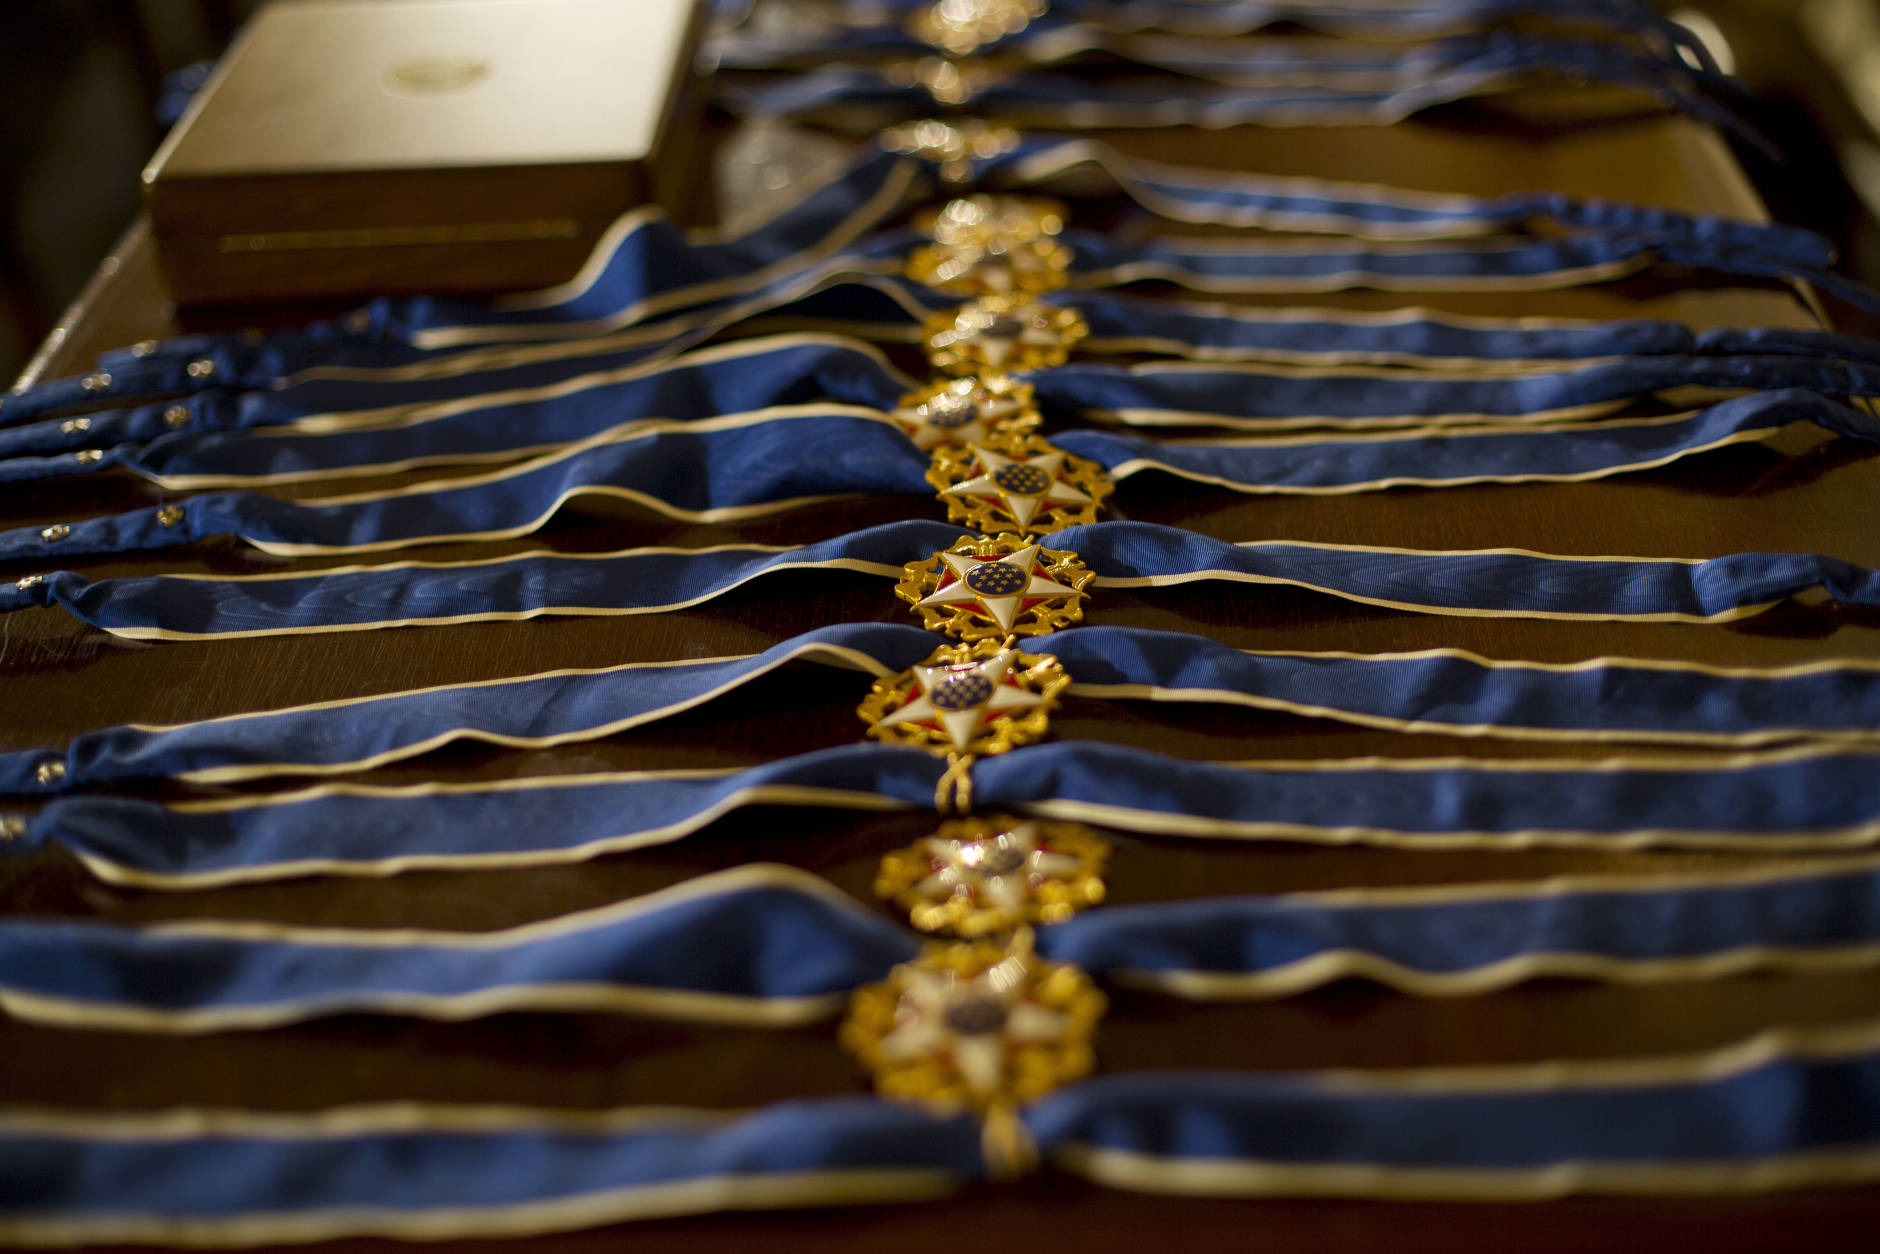 Presidential Medals of Freedom are seen on a table prior to the start of the ceremony in the East Room of the White House Washington, Tuesday, Nov. 22, 2016, where President Barack Obama is recognizing 21 Americans with the nation's highest civilian award, including giants of the entertainment industry, sports legends, activists and innovators. (AP Photo/Pablo Martinez Monsivais)